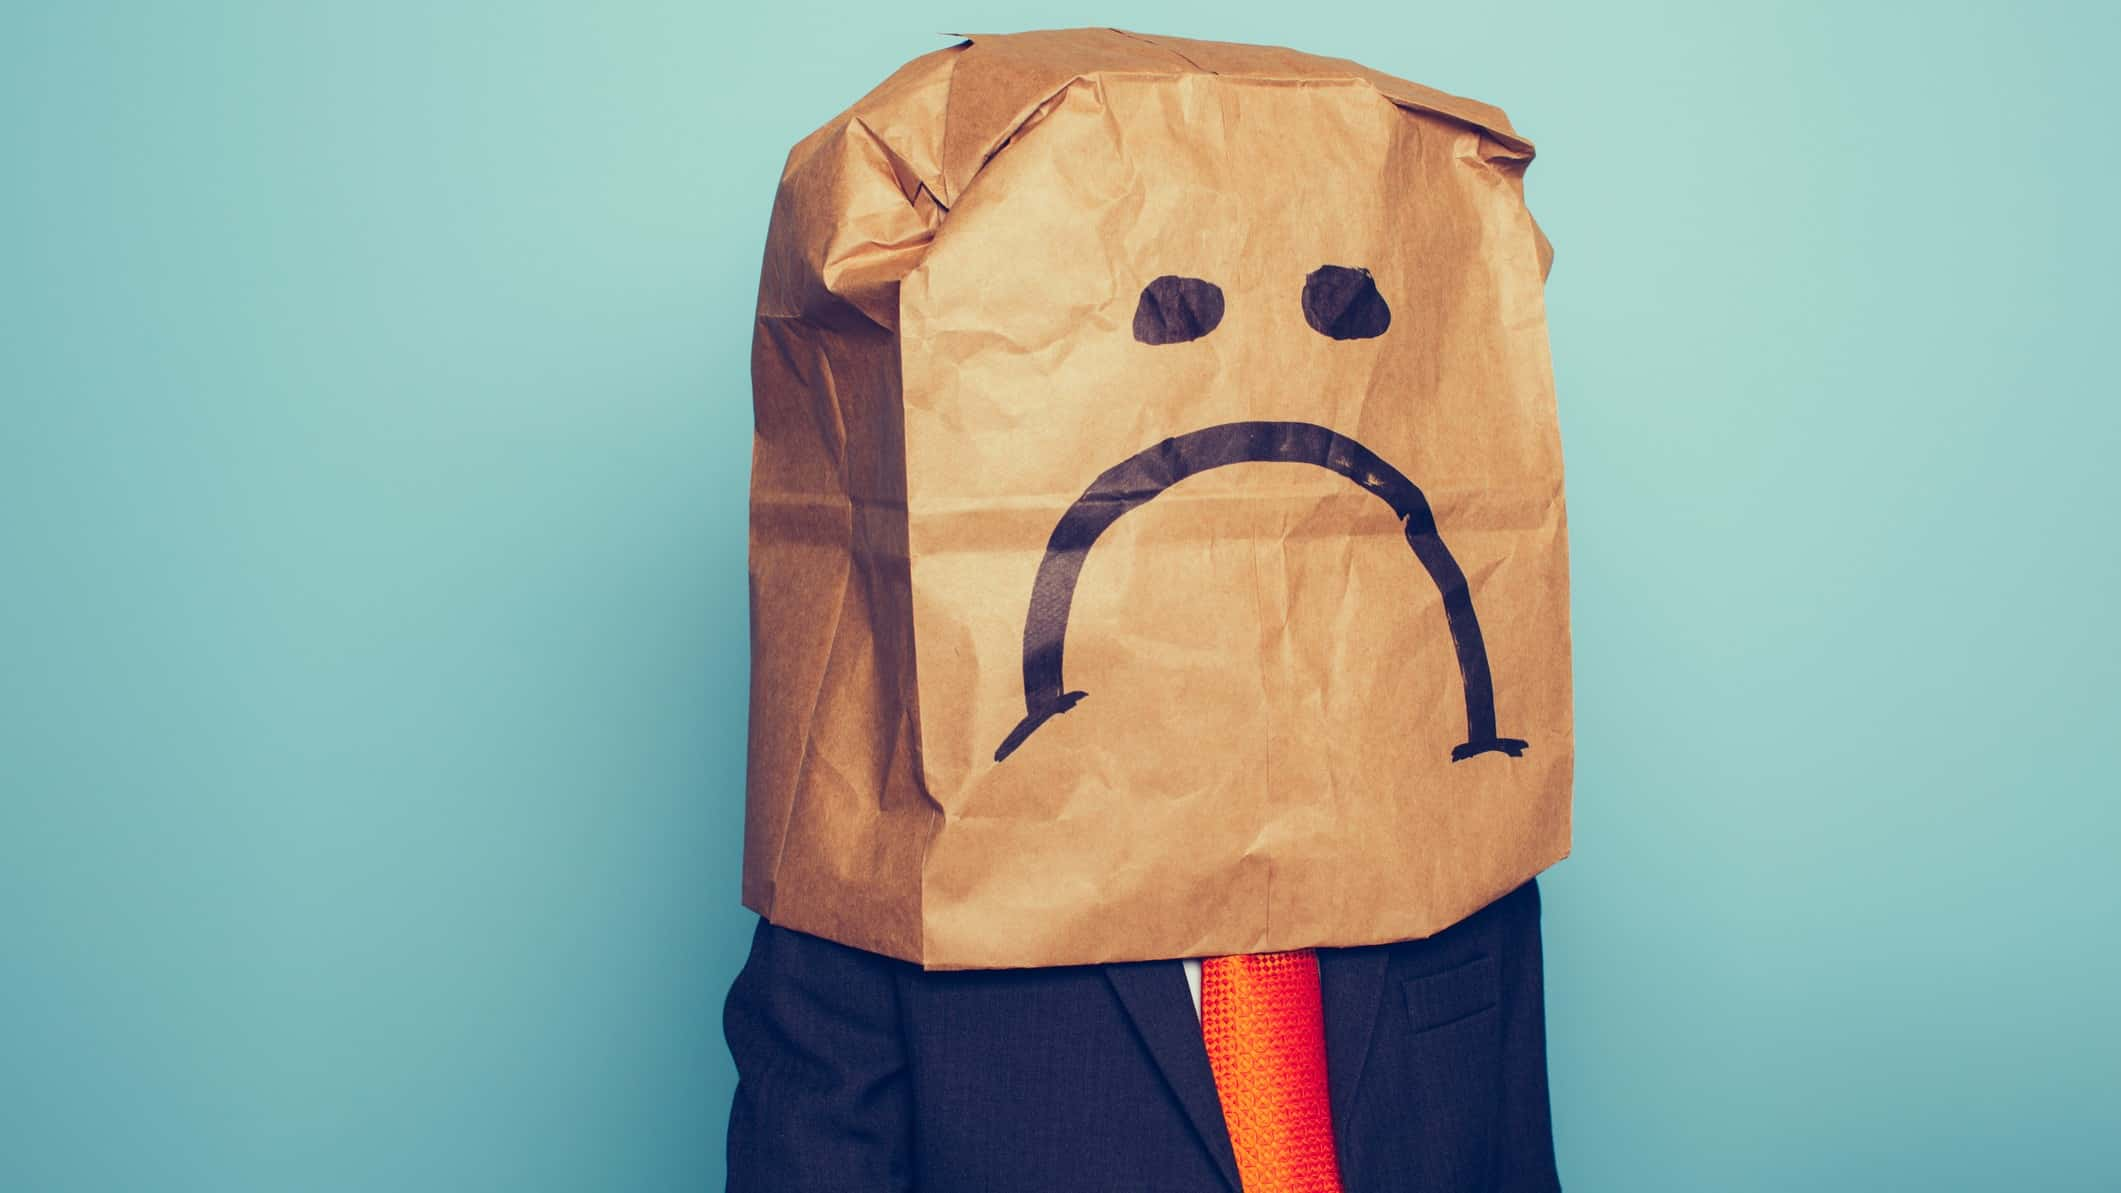 asx share price falling lower represented by investor wearing paper bag on head with sad face